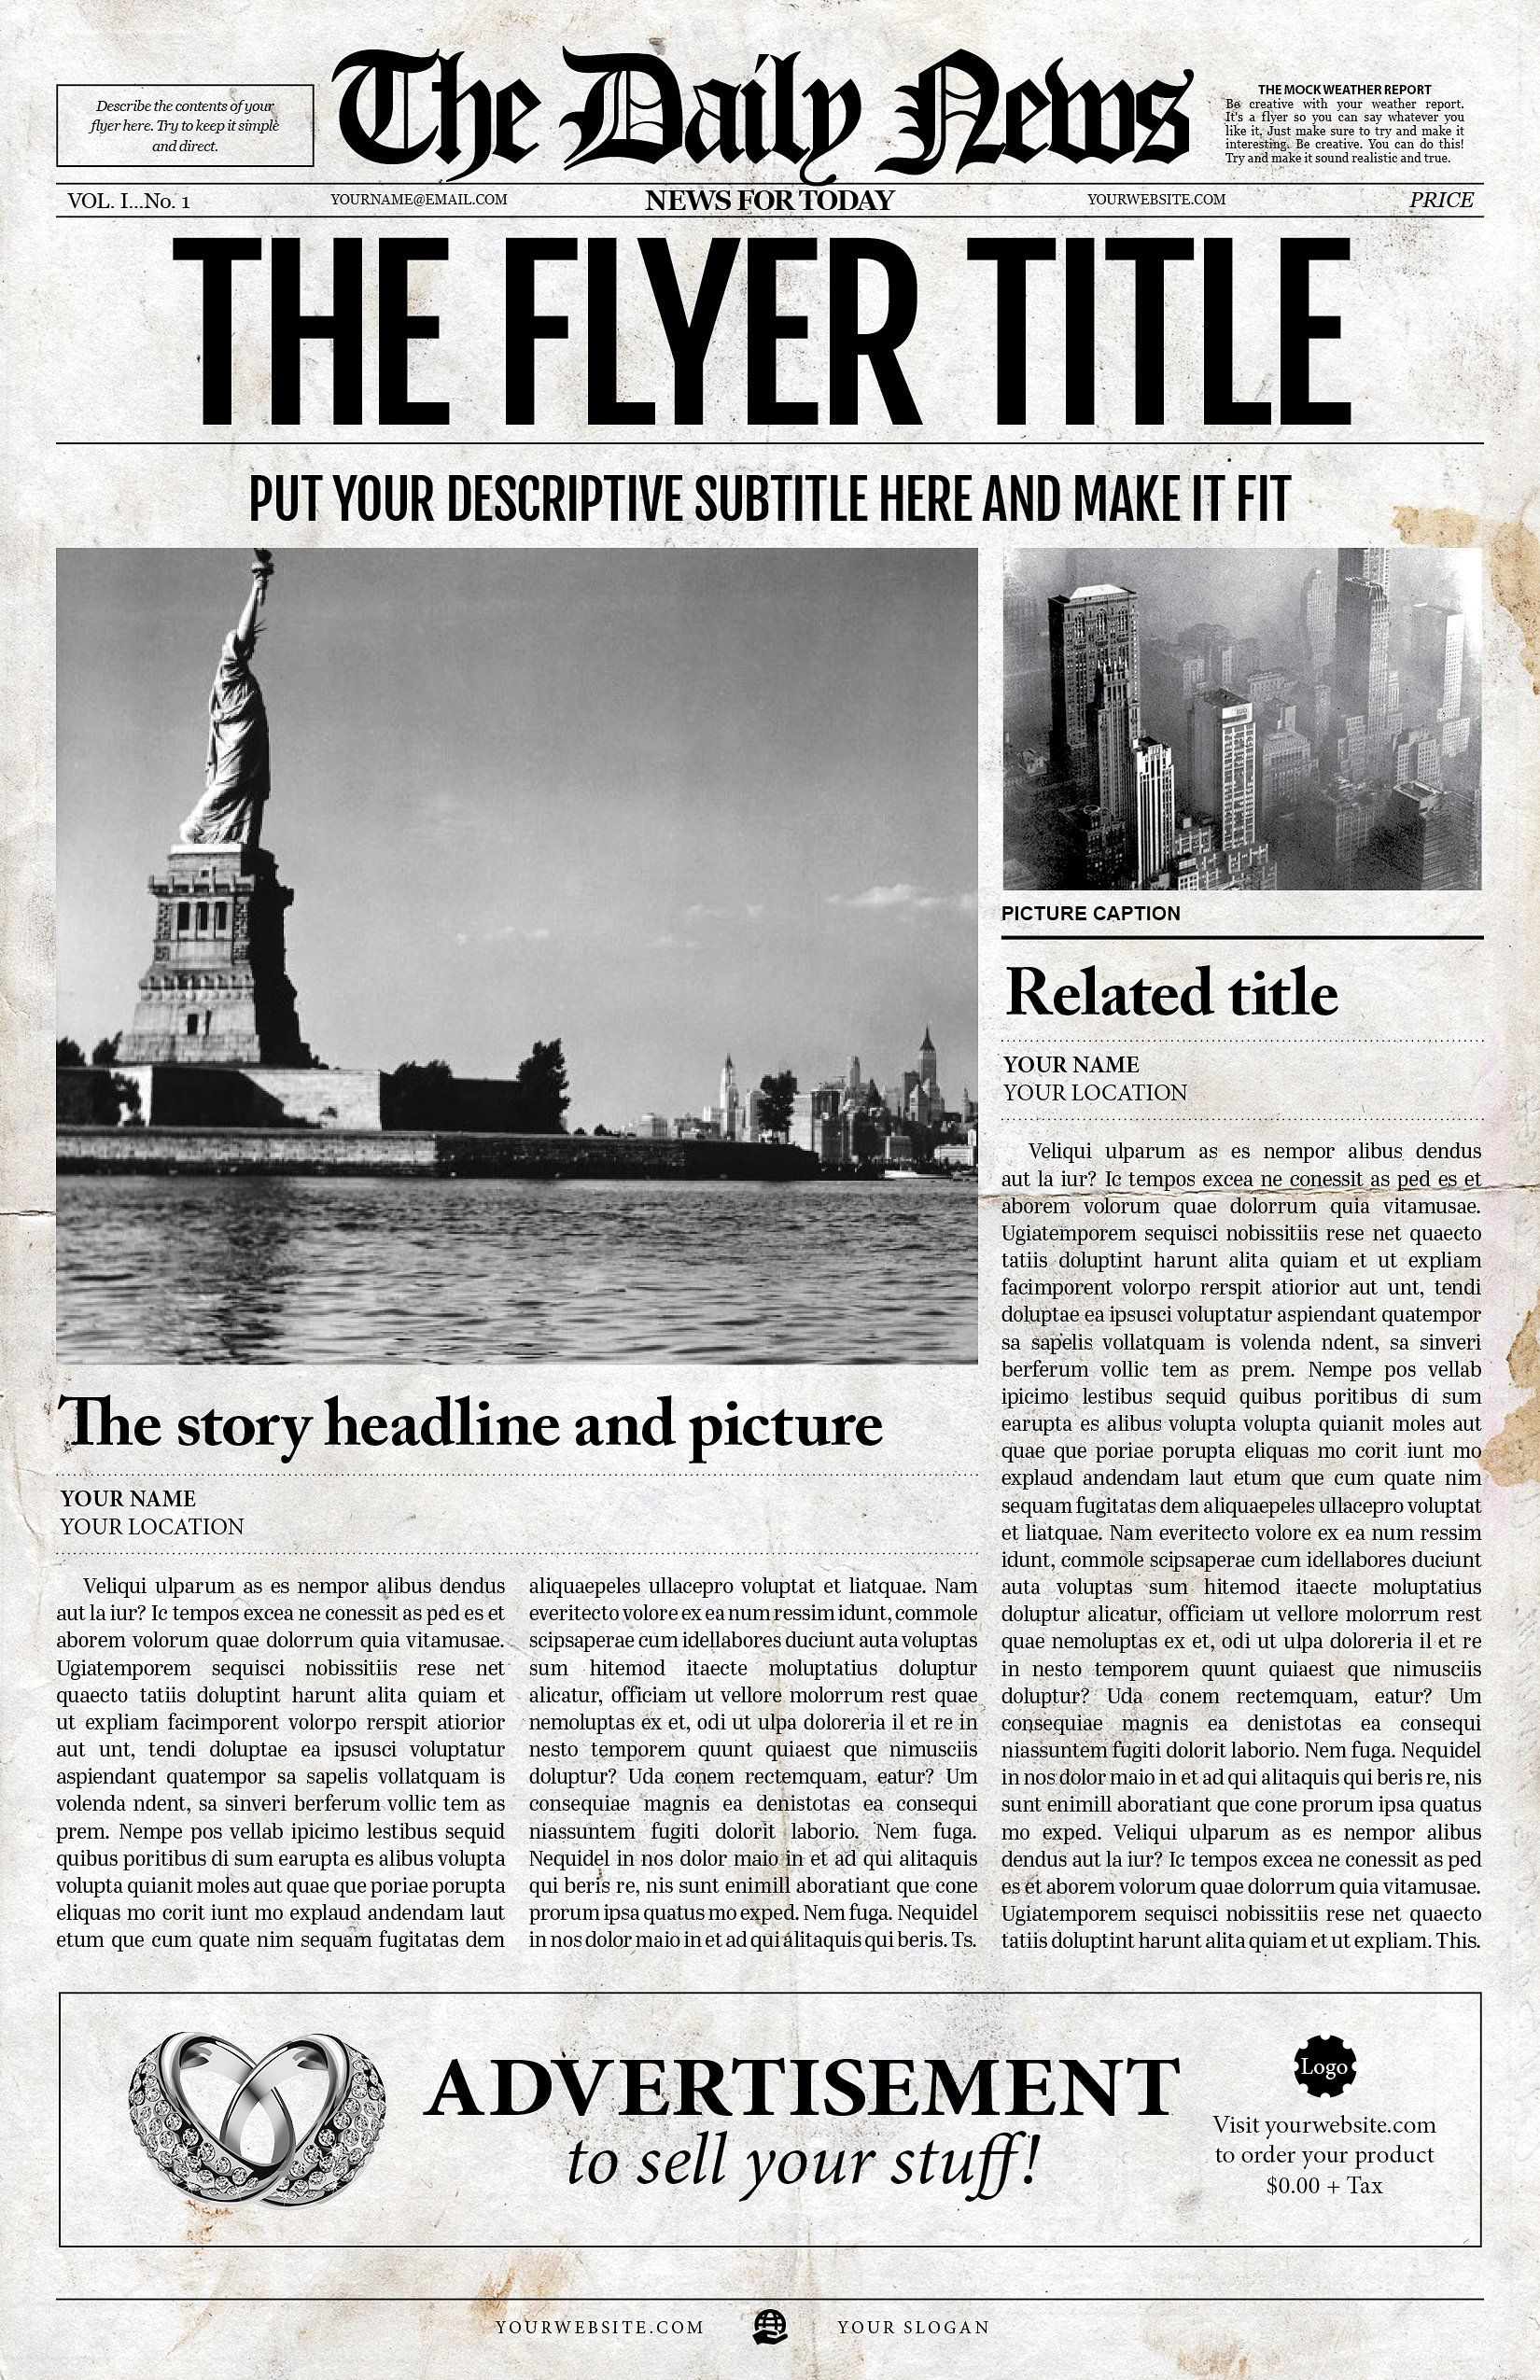 2x1 Page Newspaper Template Adobe Indesign 8 5x11 11x17